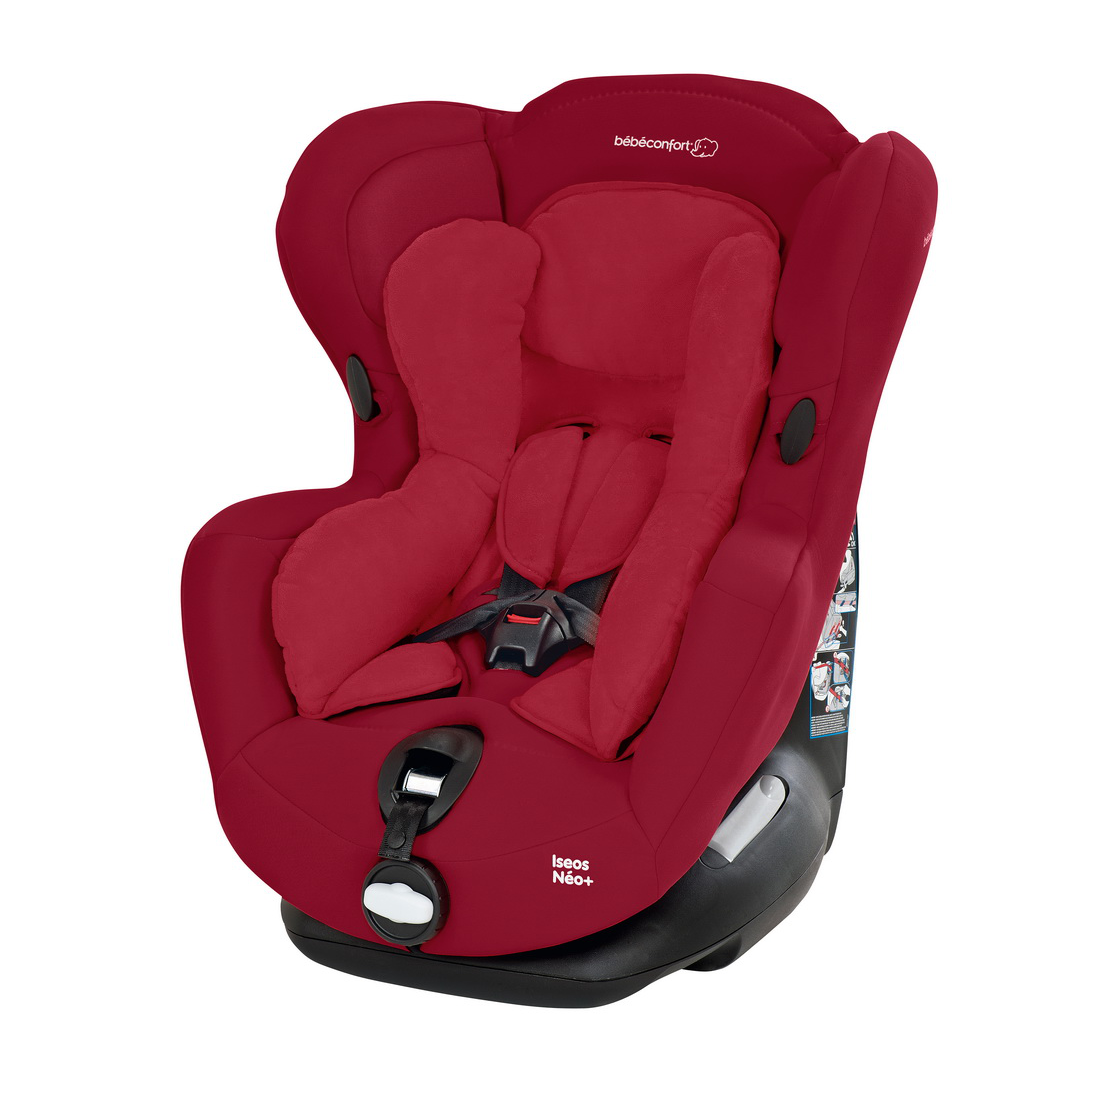 Автокресло Bebe Confort Iseos Neo Raspberry Red